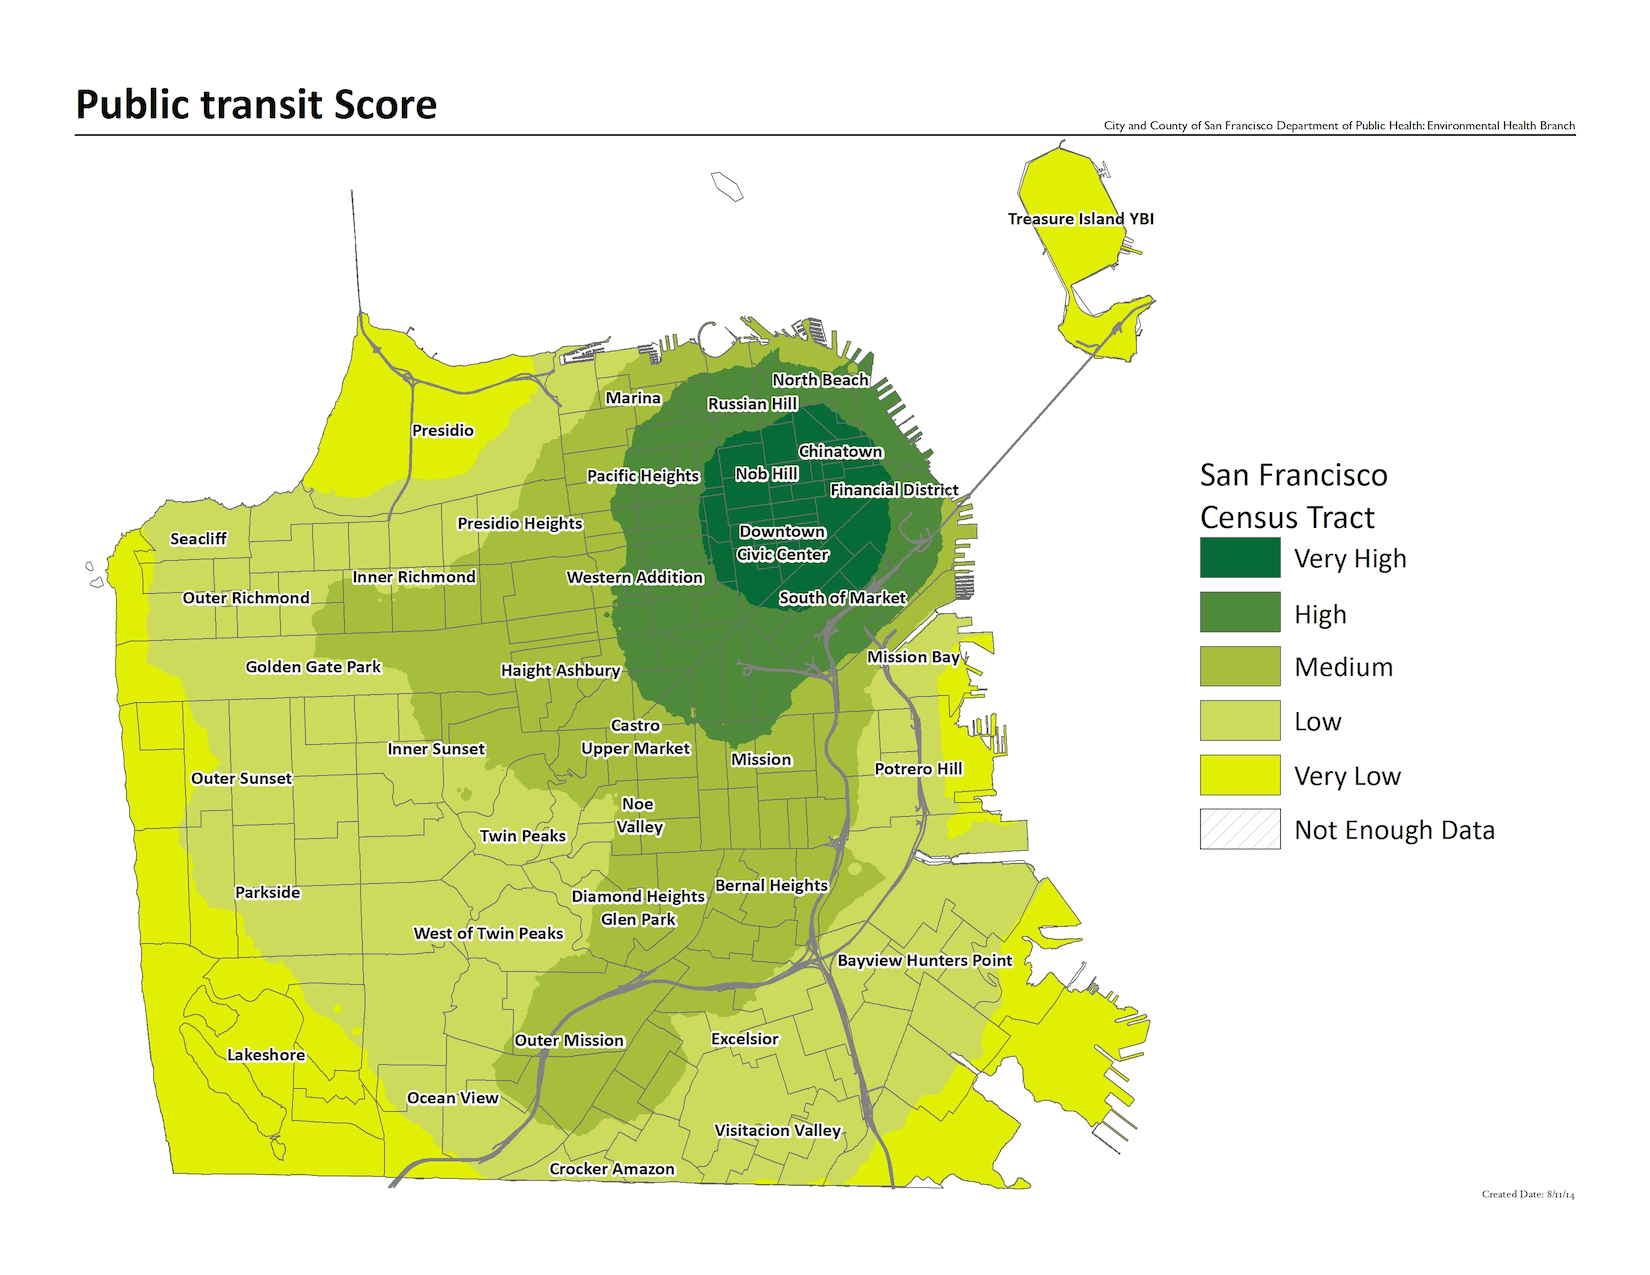 Raster map of public transit score. The best served areas include Nob Hill, Chinatown, and the Financial District.